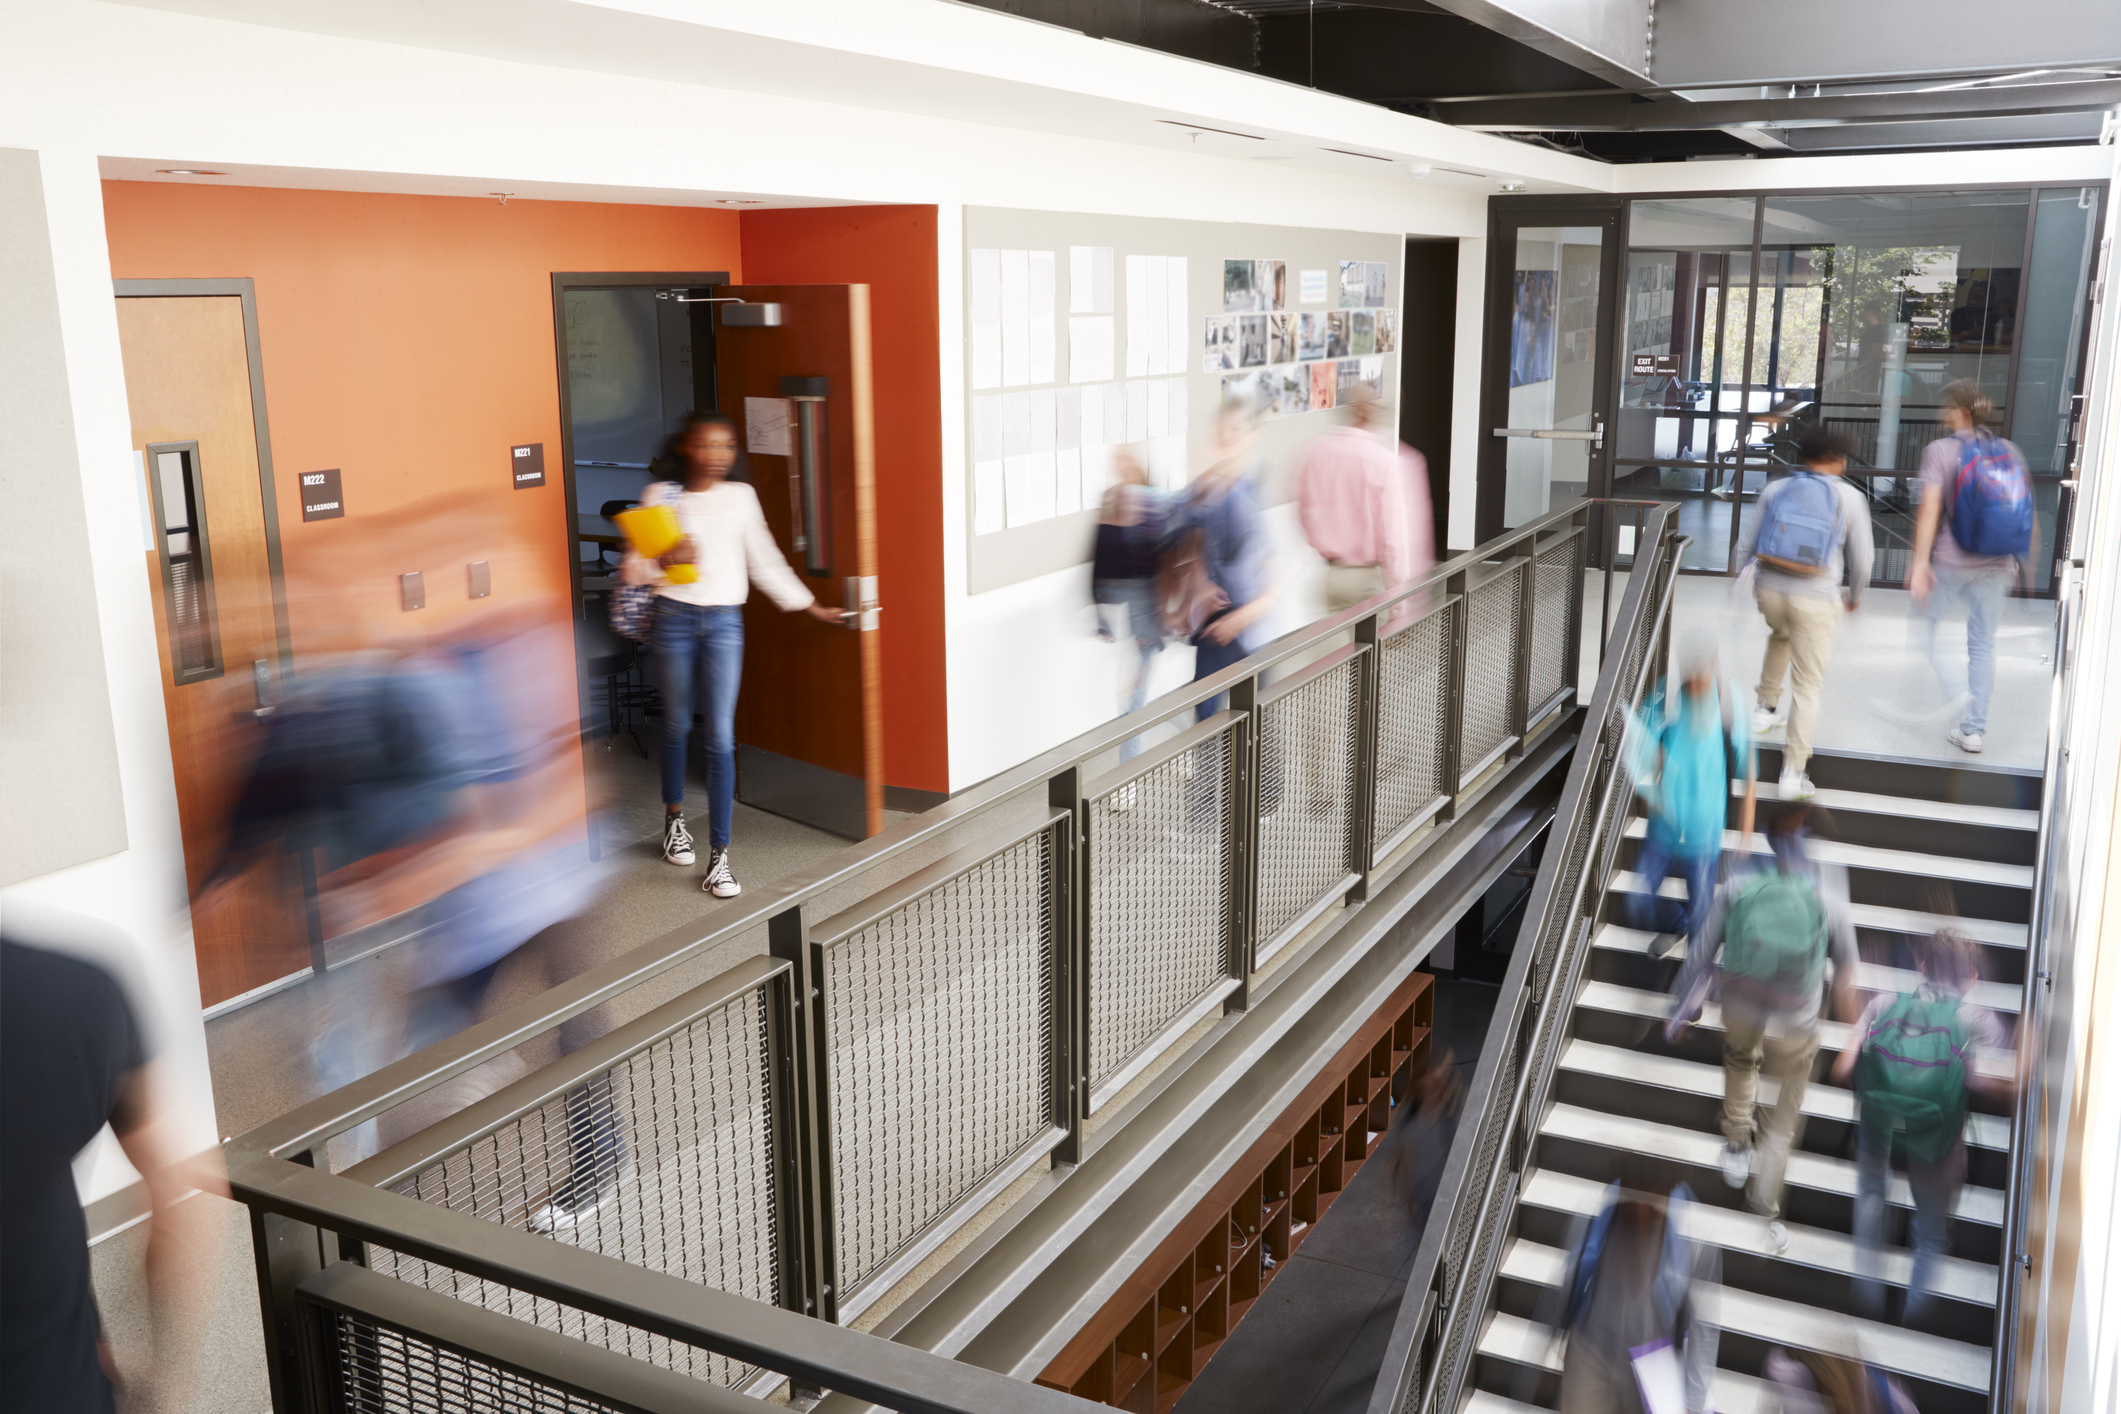 How MOBOTIX Security Systems Can Help Protect Your School Campus